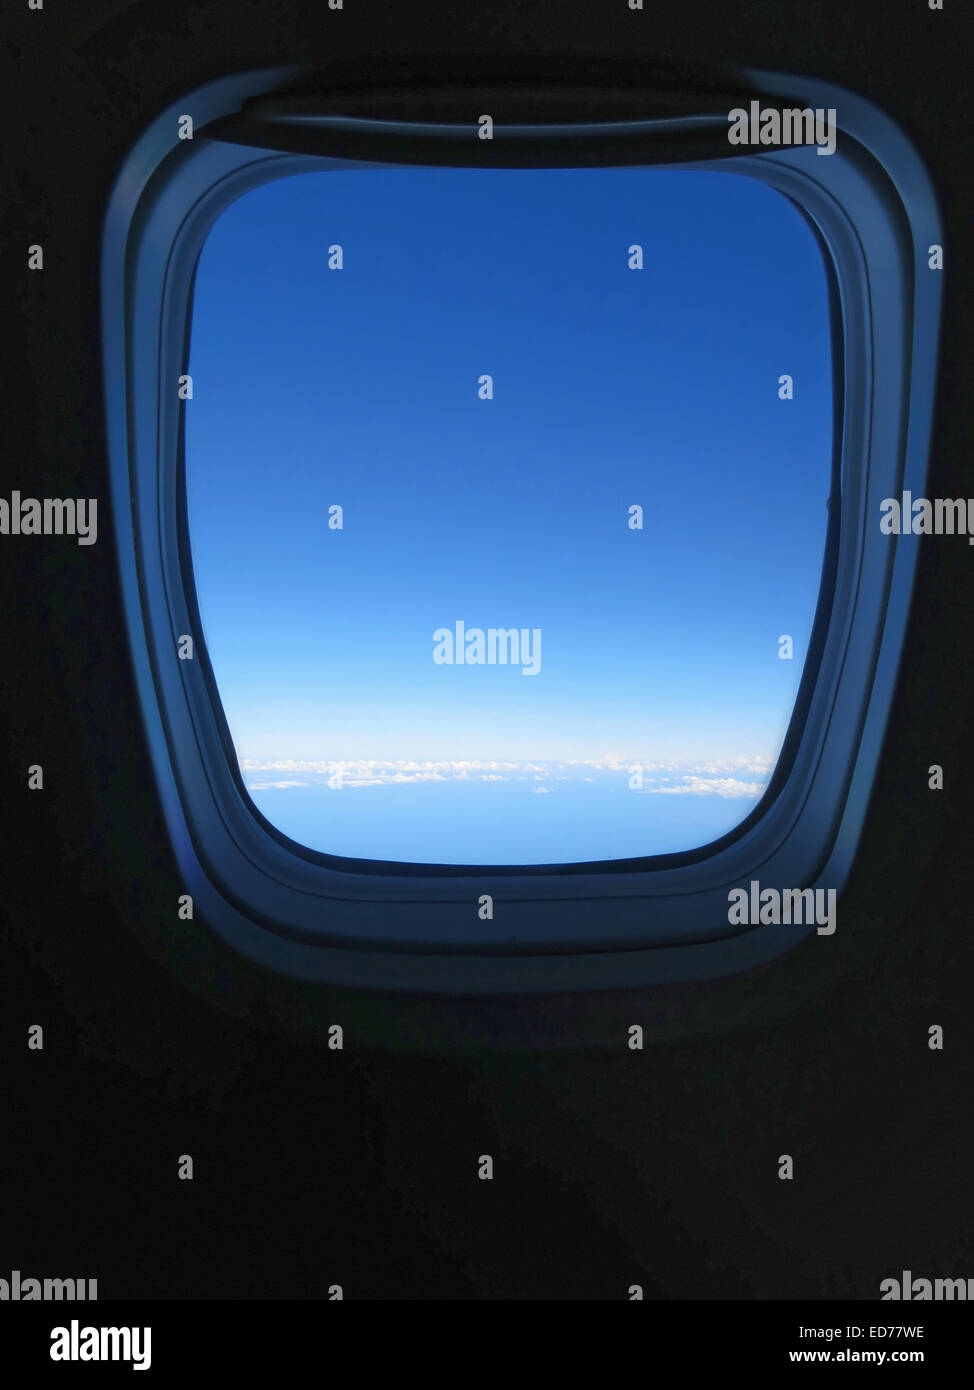 view from airplane window while in flight - Stock Image